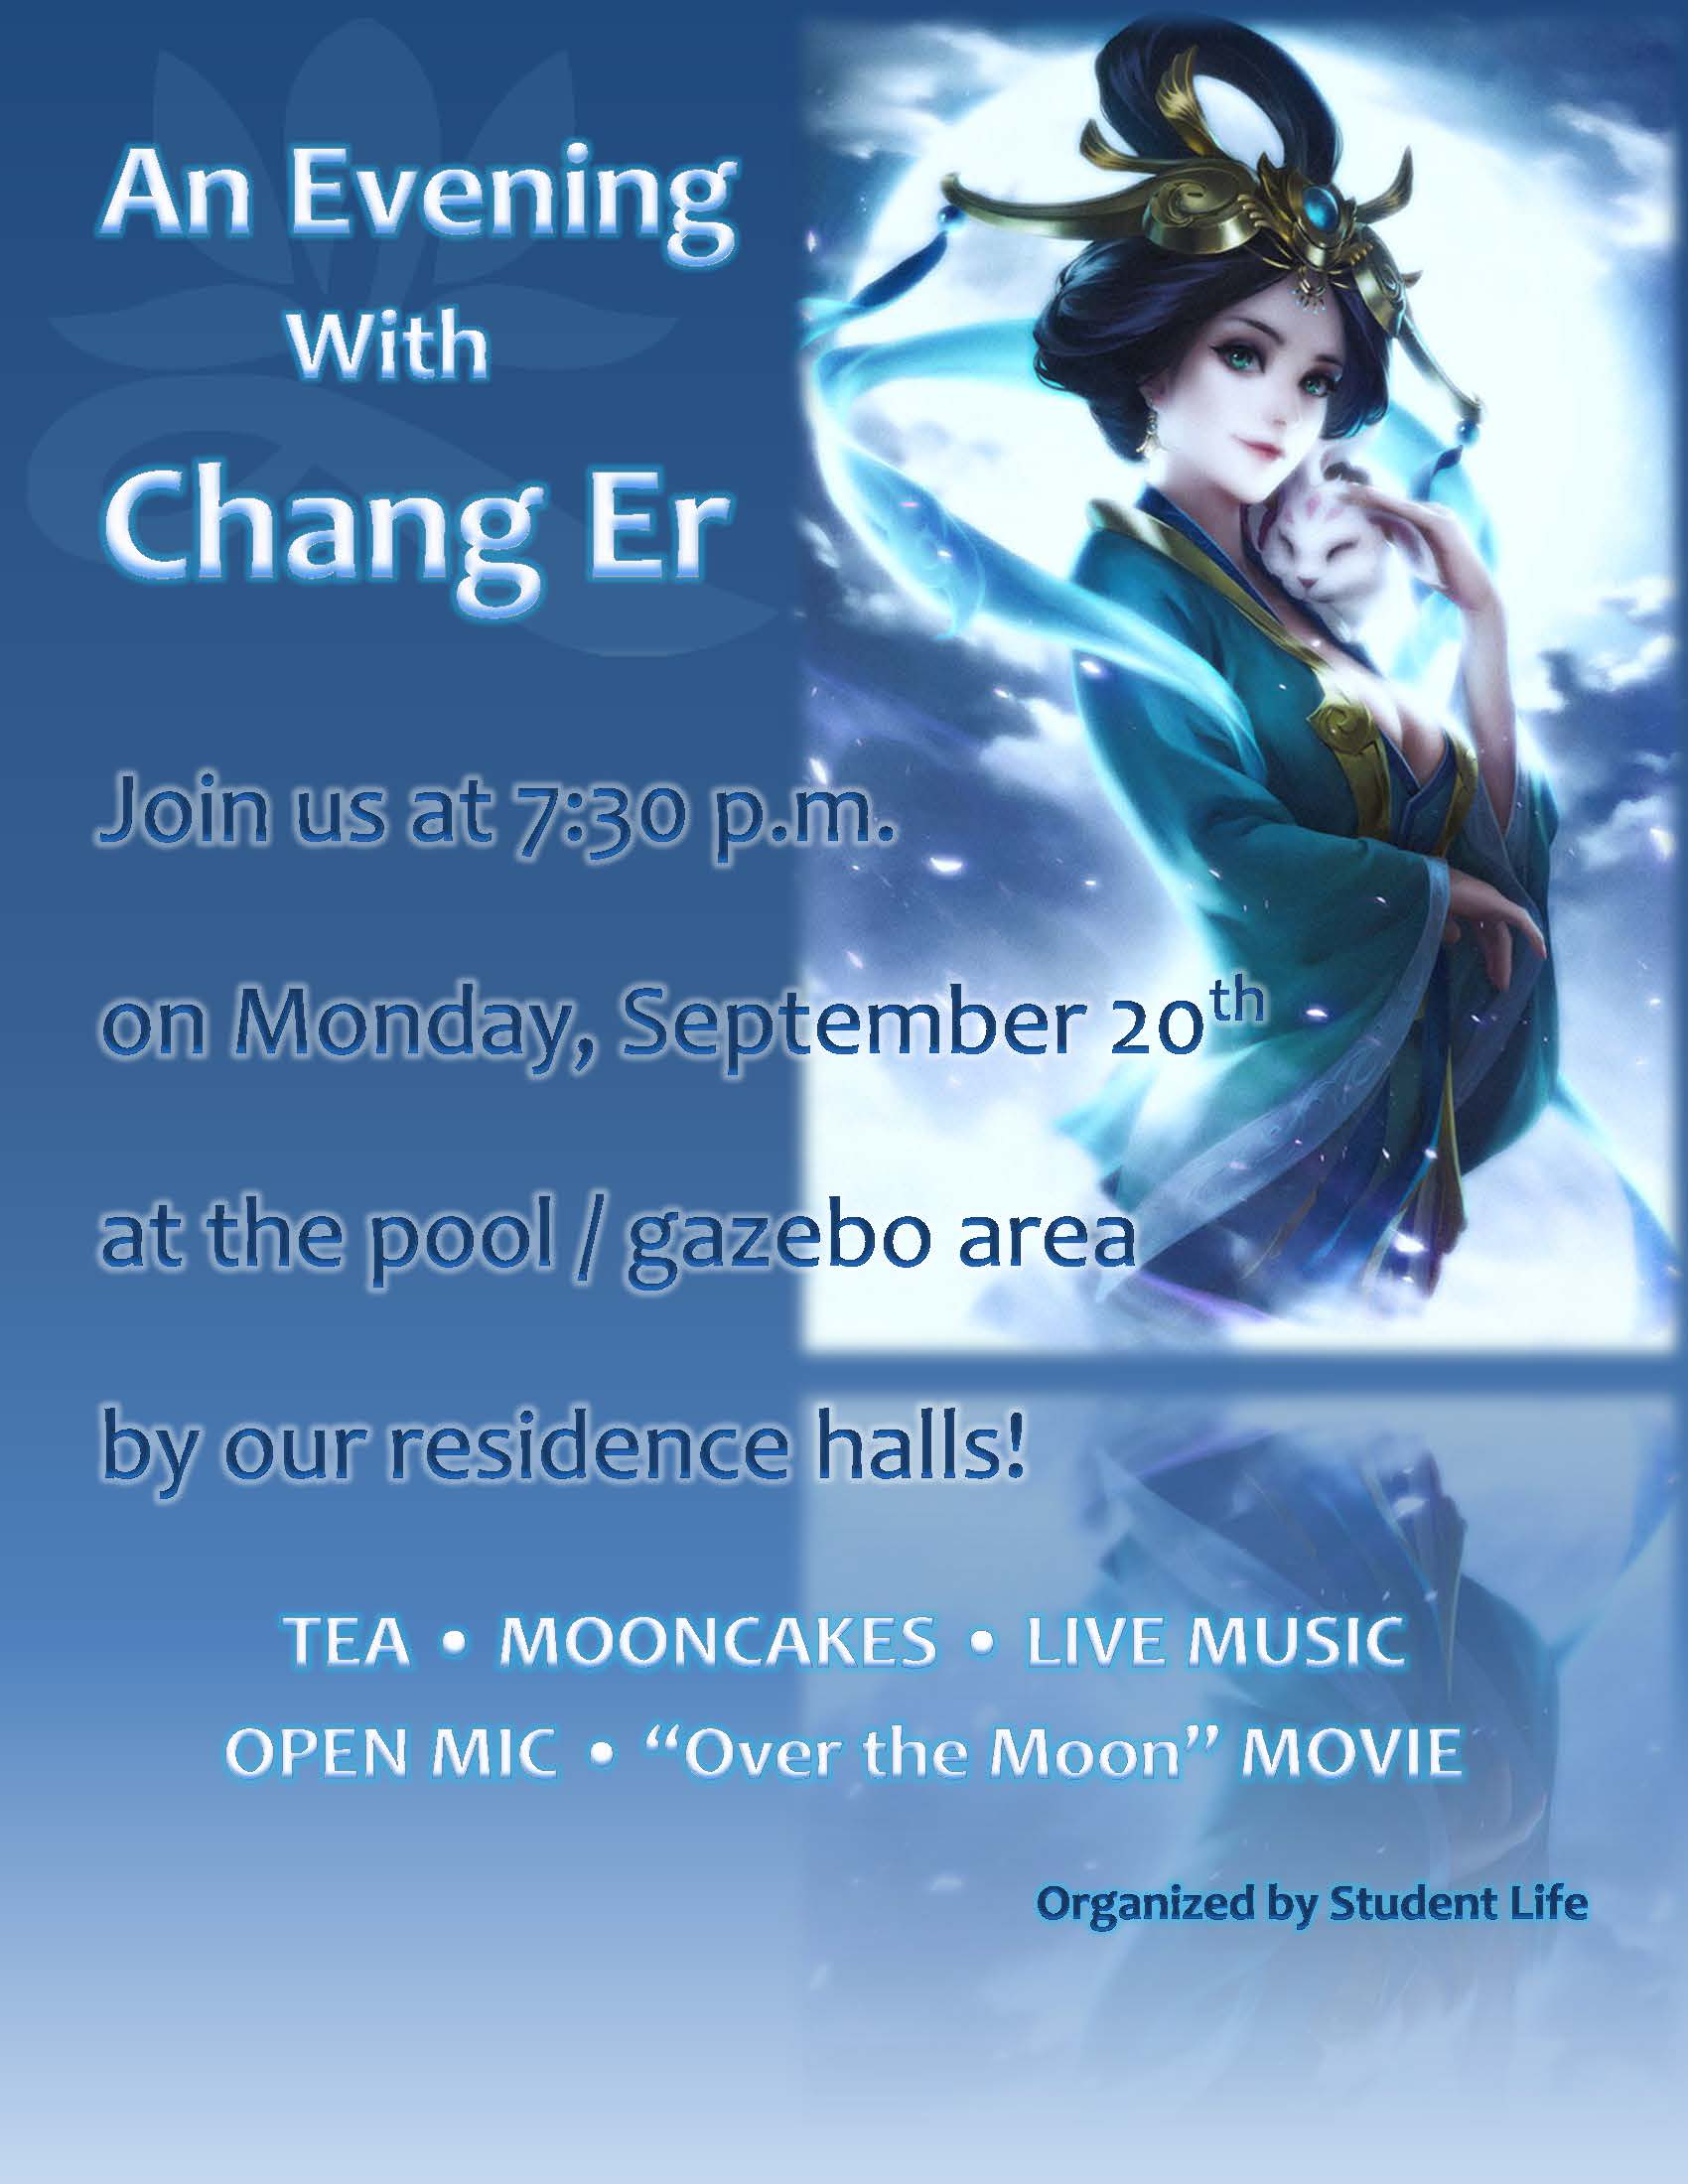 An Evening with Chang Er event flyer